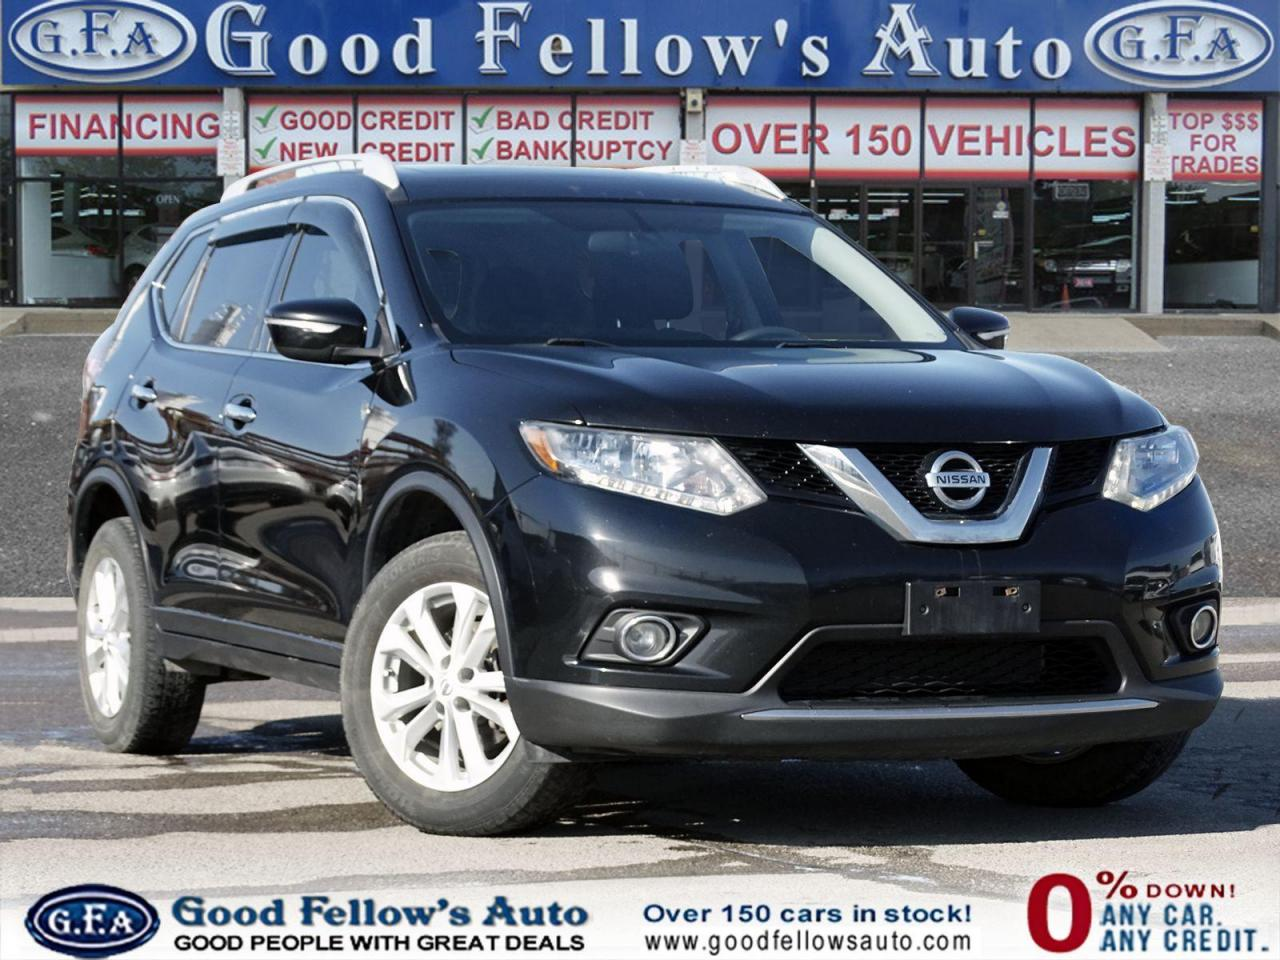 used 2015 Nissan Rogue car, priced at $11,400